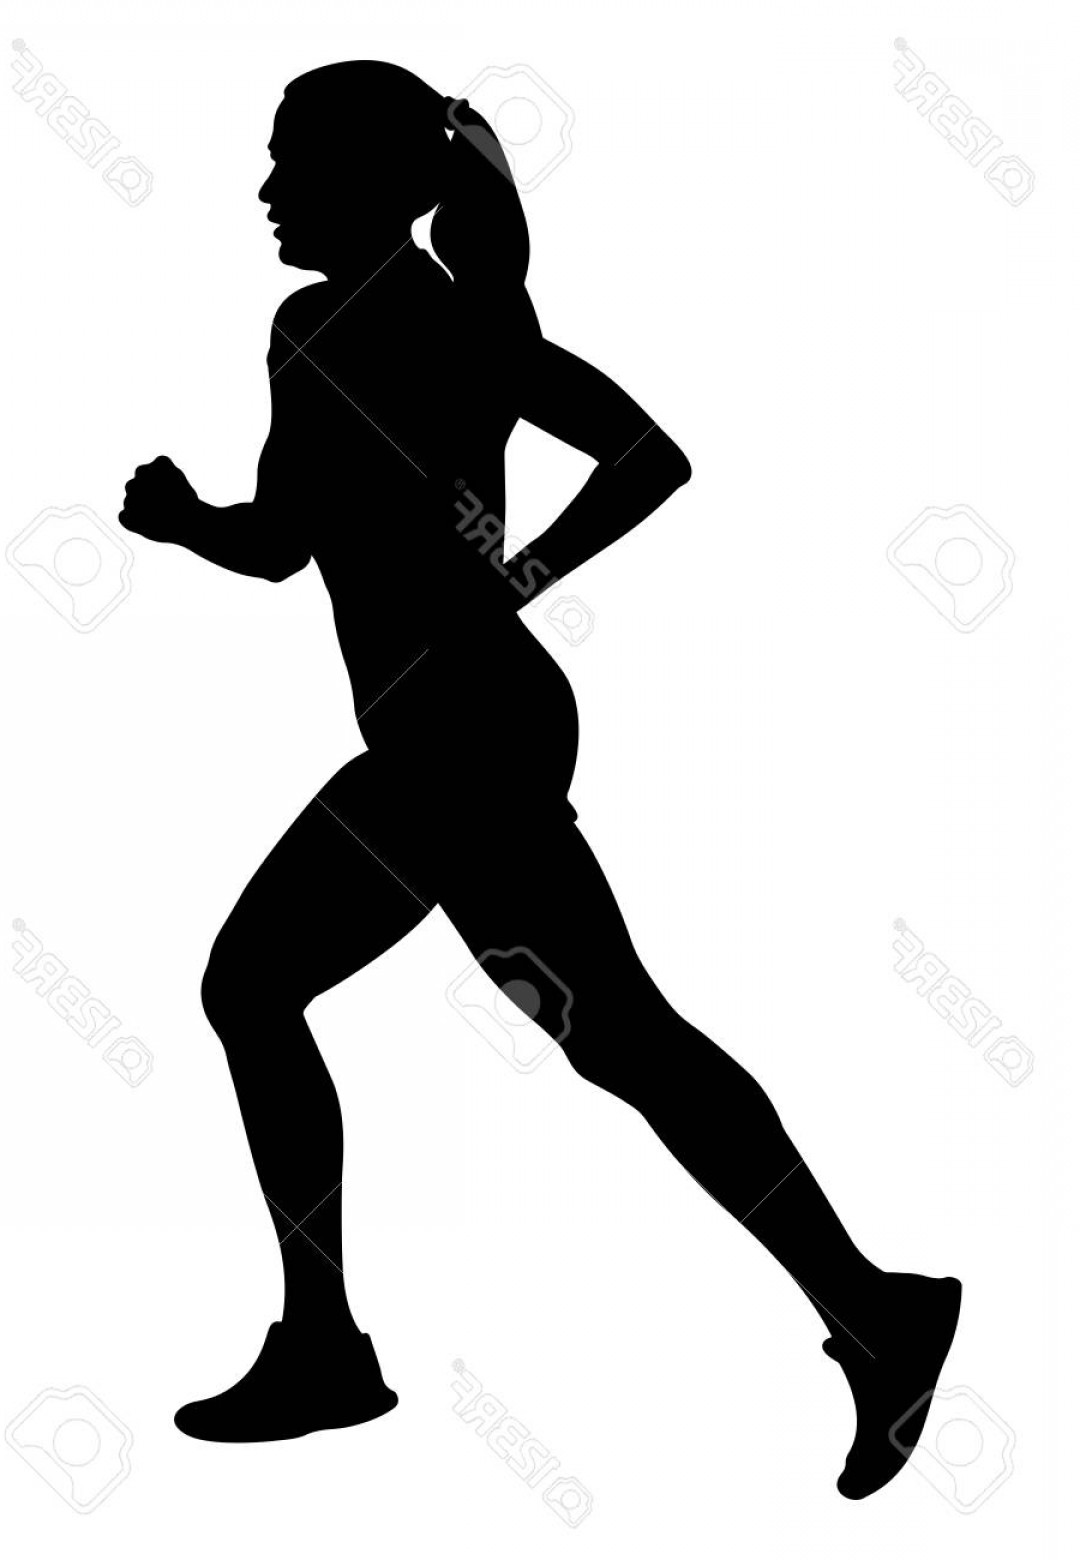 Vector Silhouette Of Girl Running Track: Photostock Vector Girl Athlete Runner Running Side View Black Silhouette